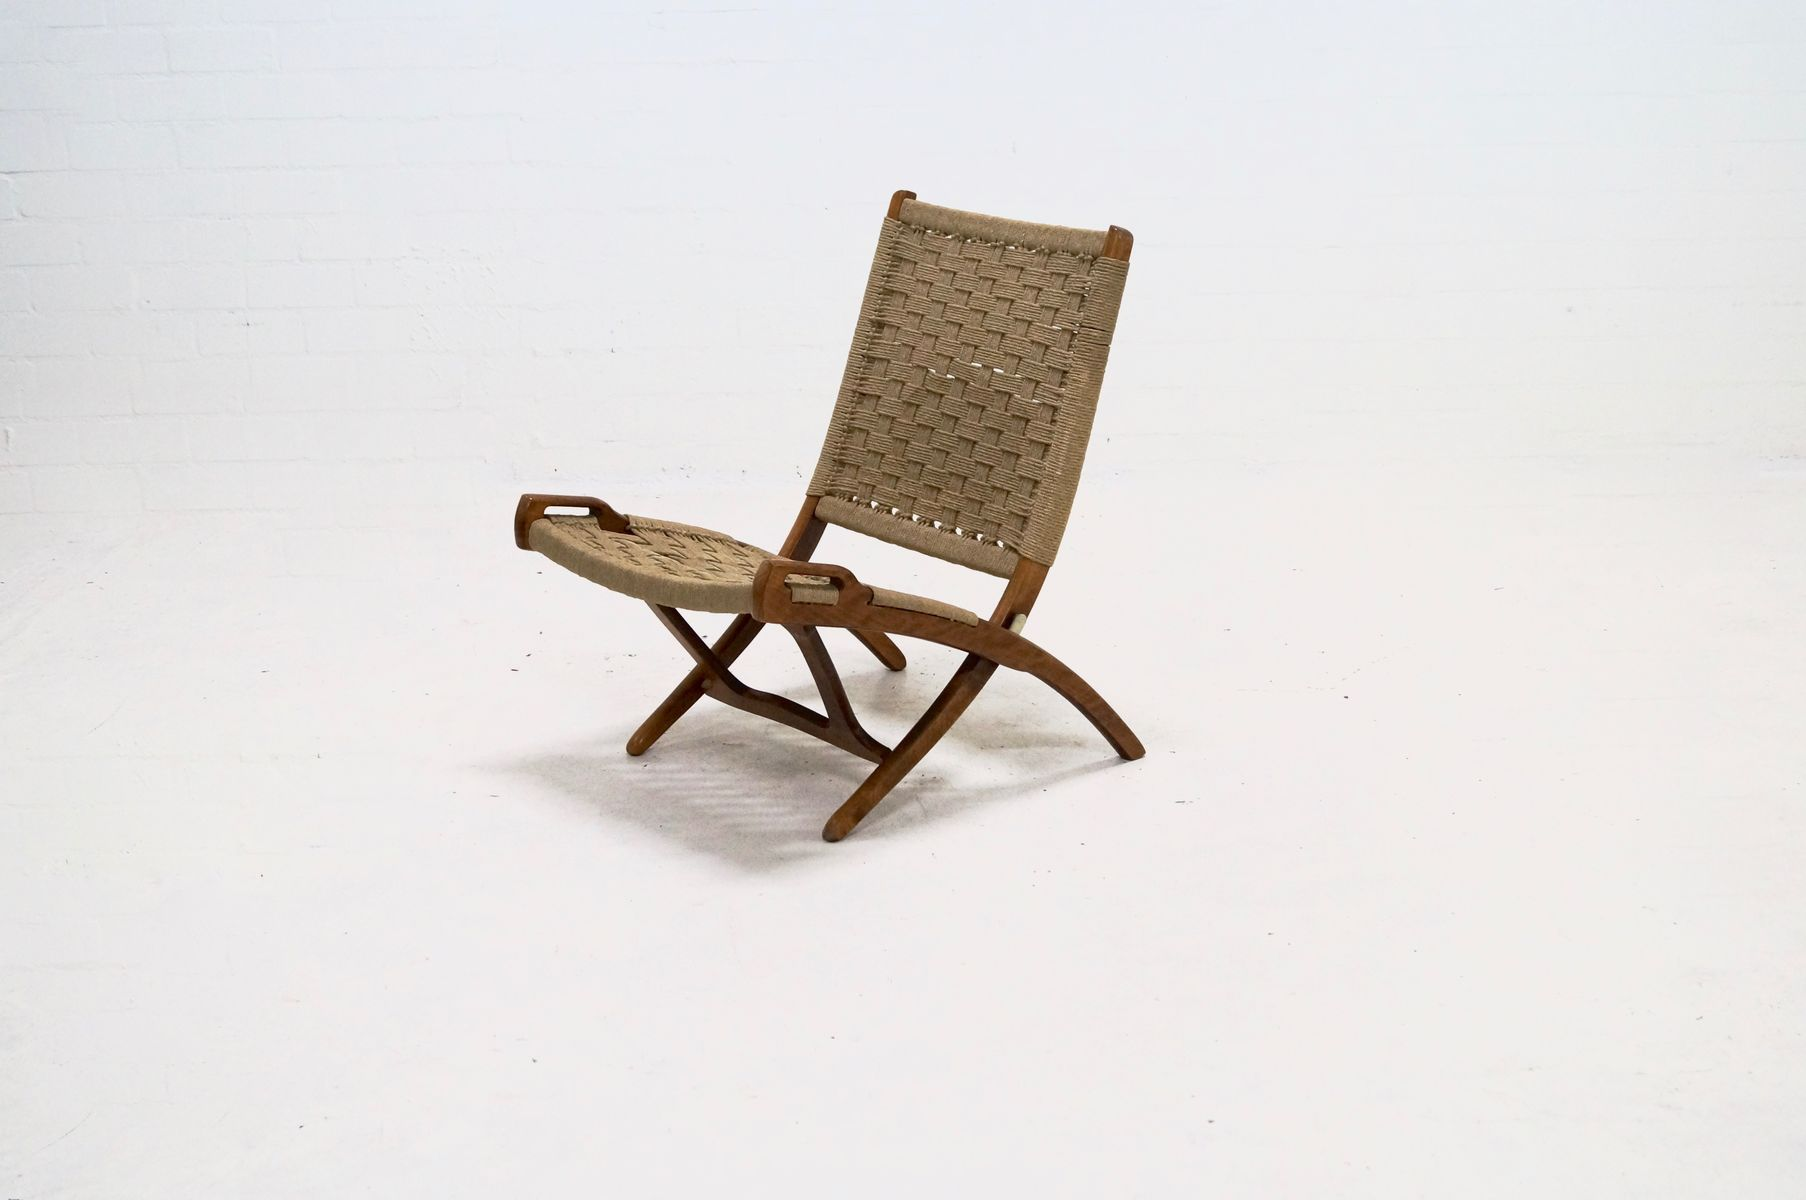 Folding Rope Chair By Ebert Wels, 1960s For Sale At Pamono